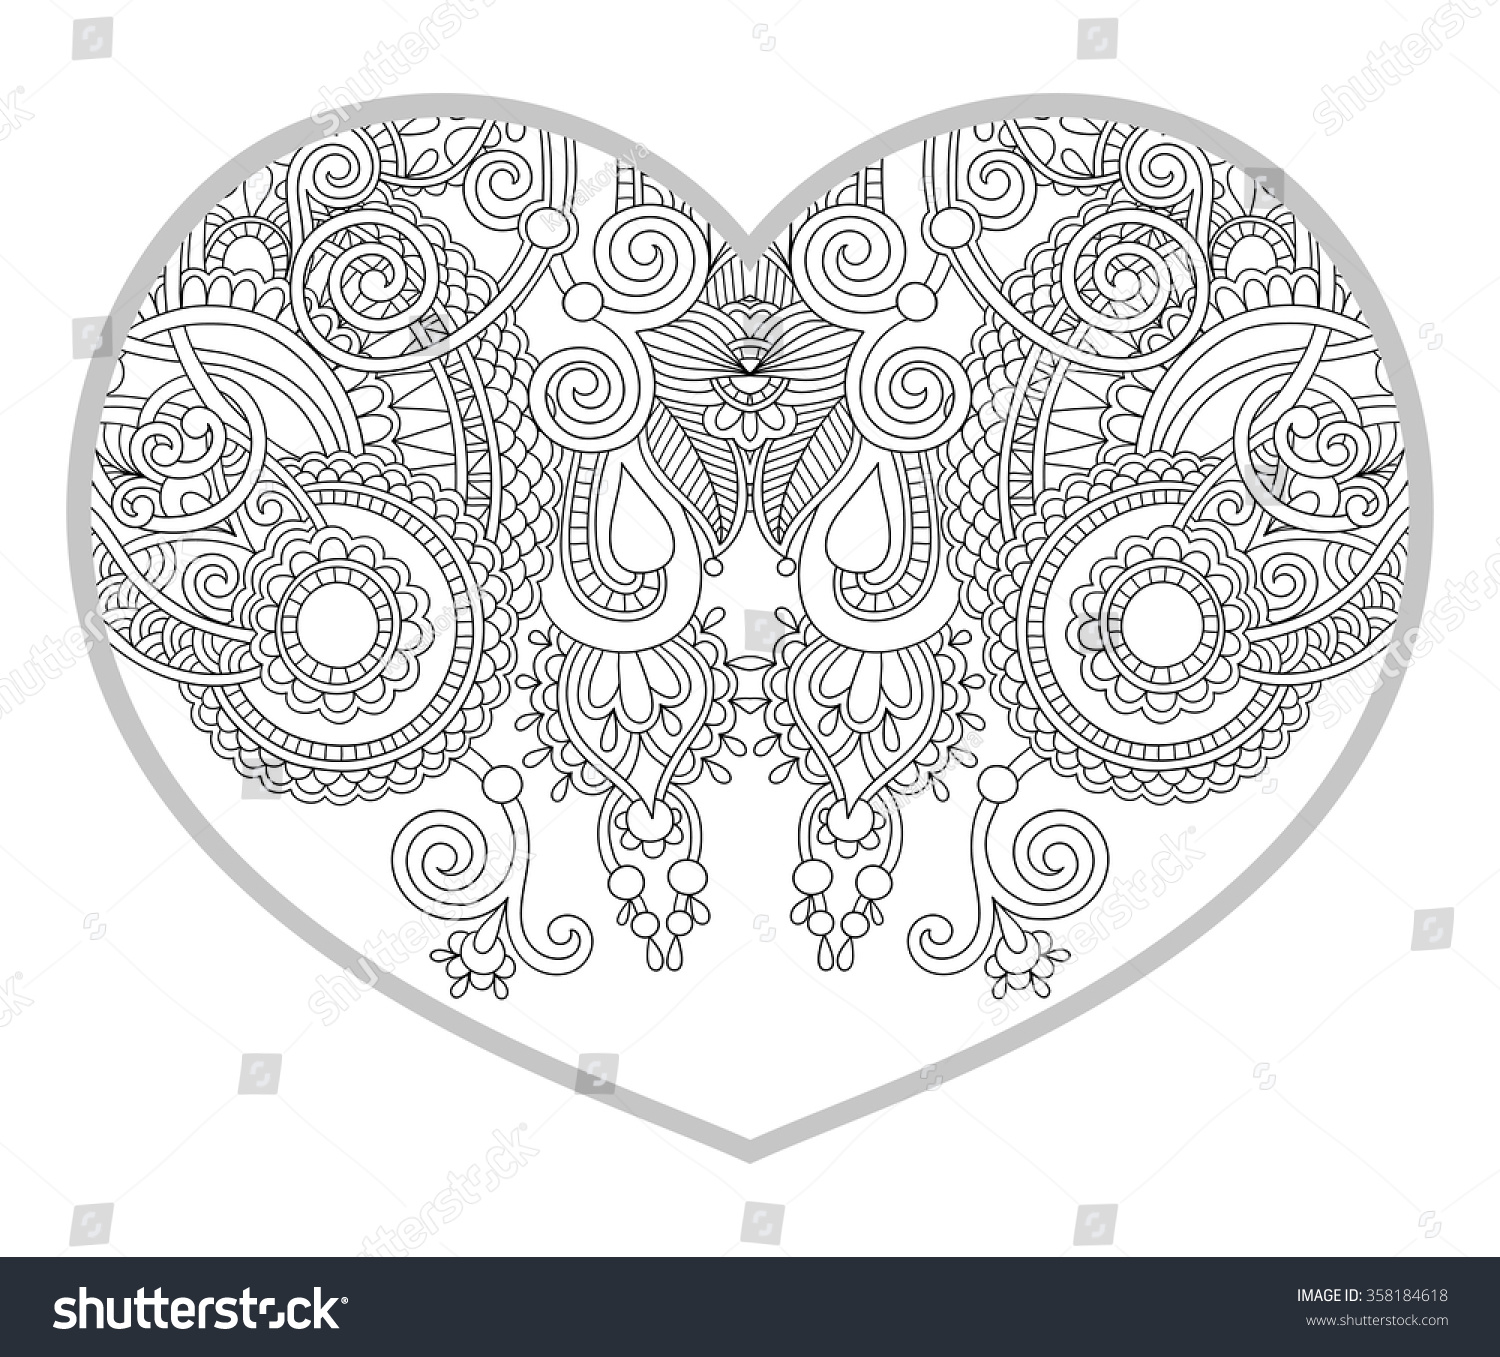 Gallery For gt Heart Patterns To Color